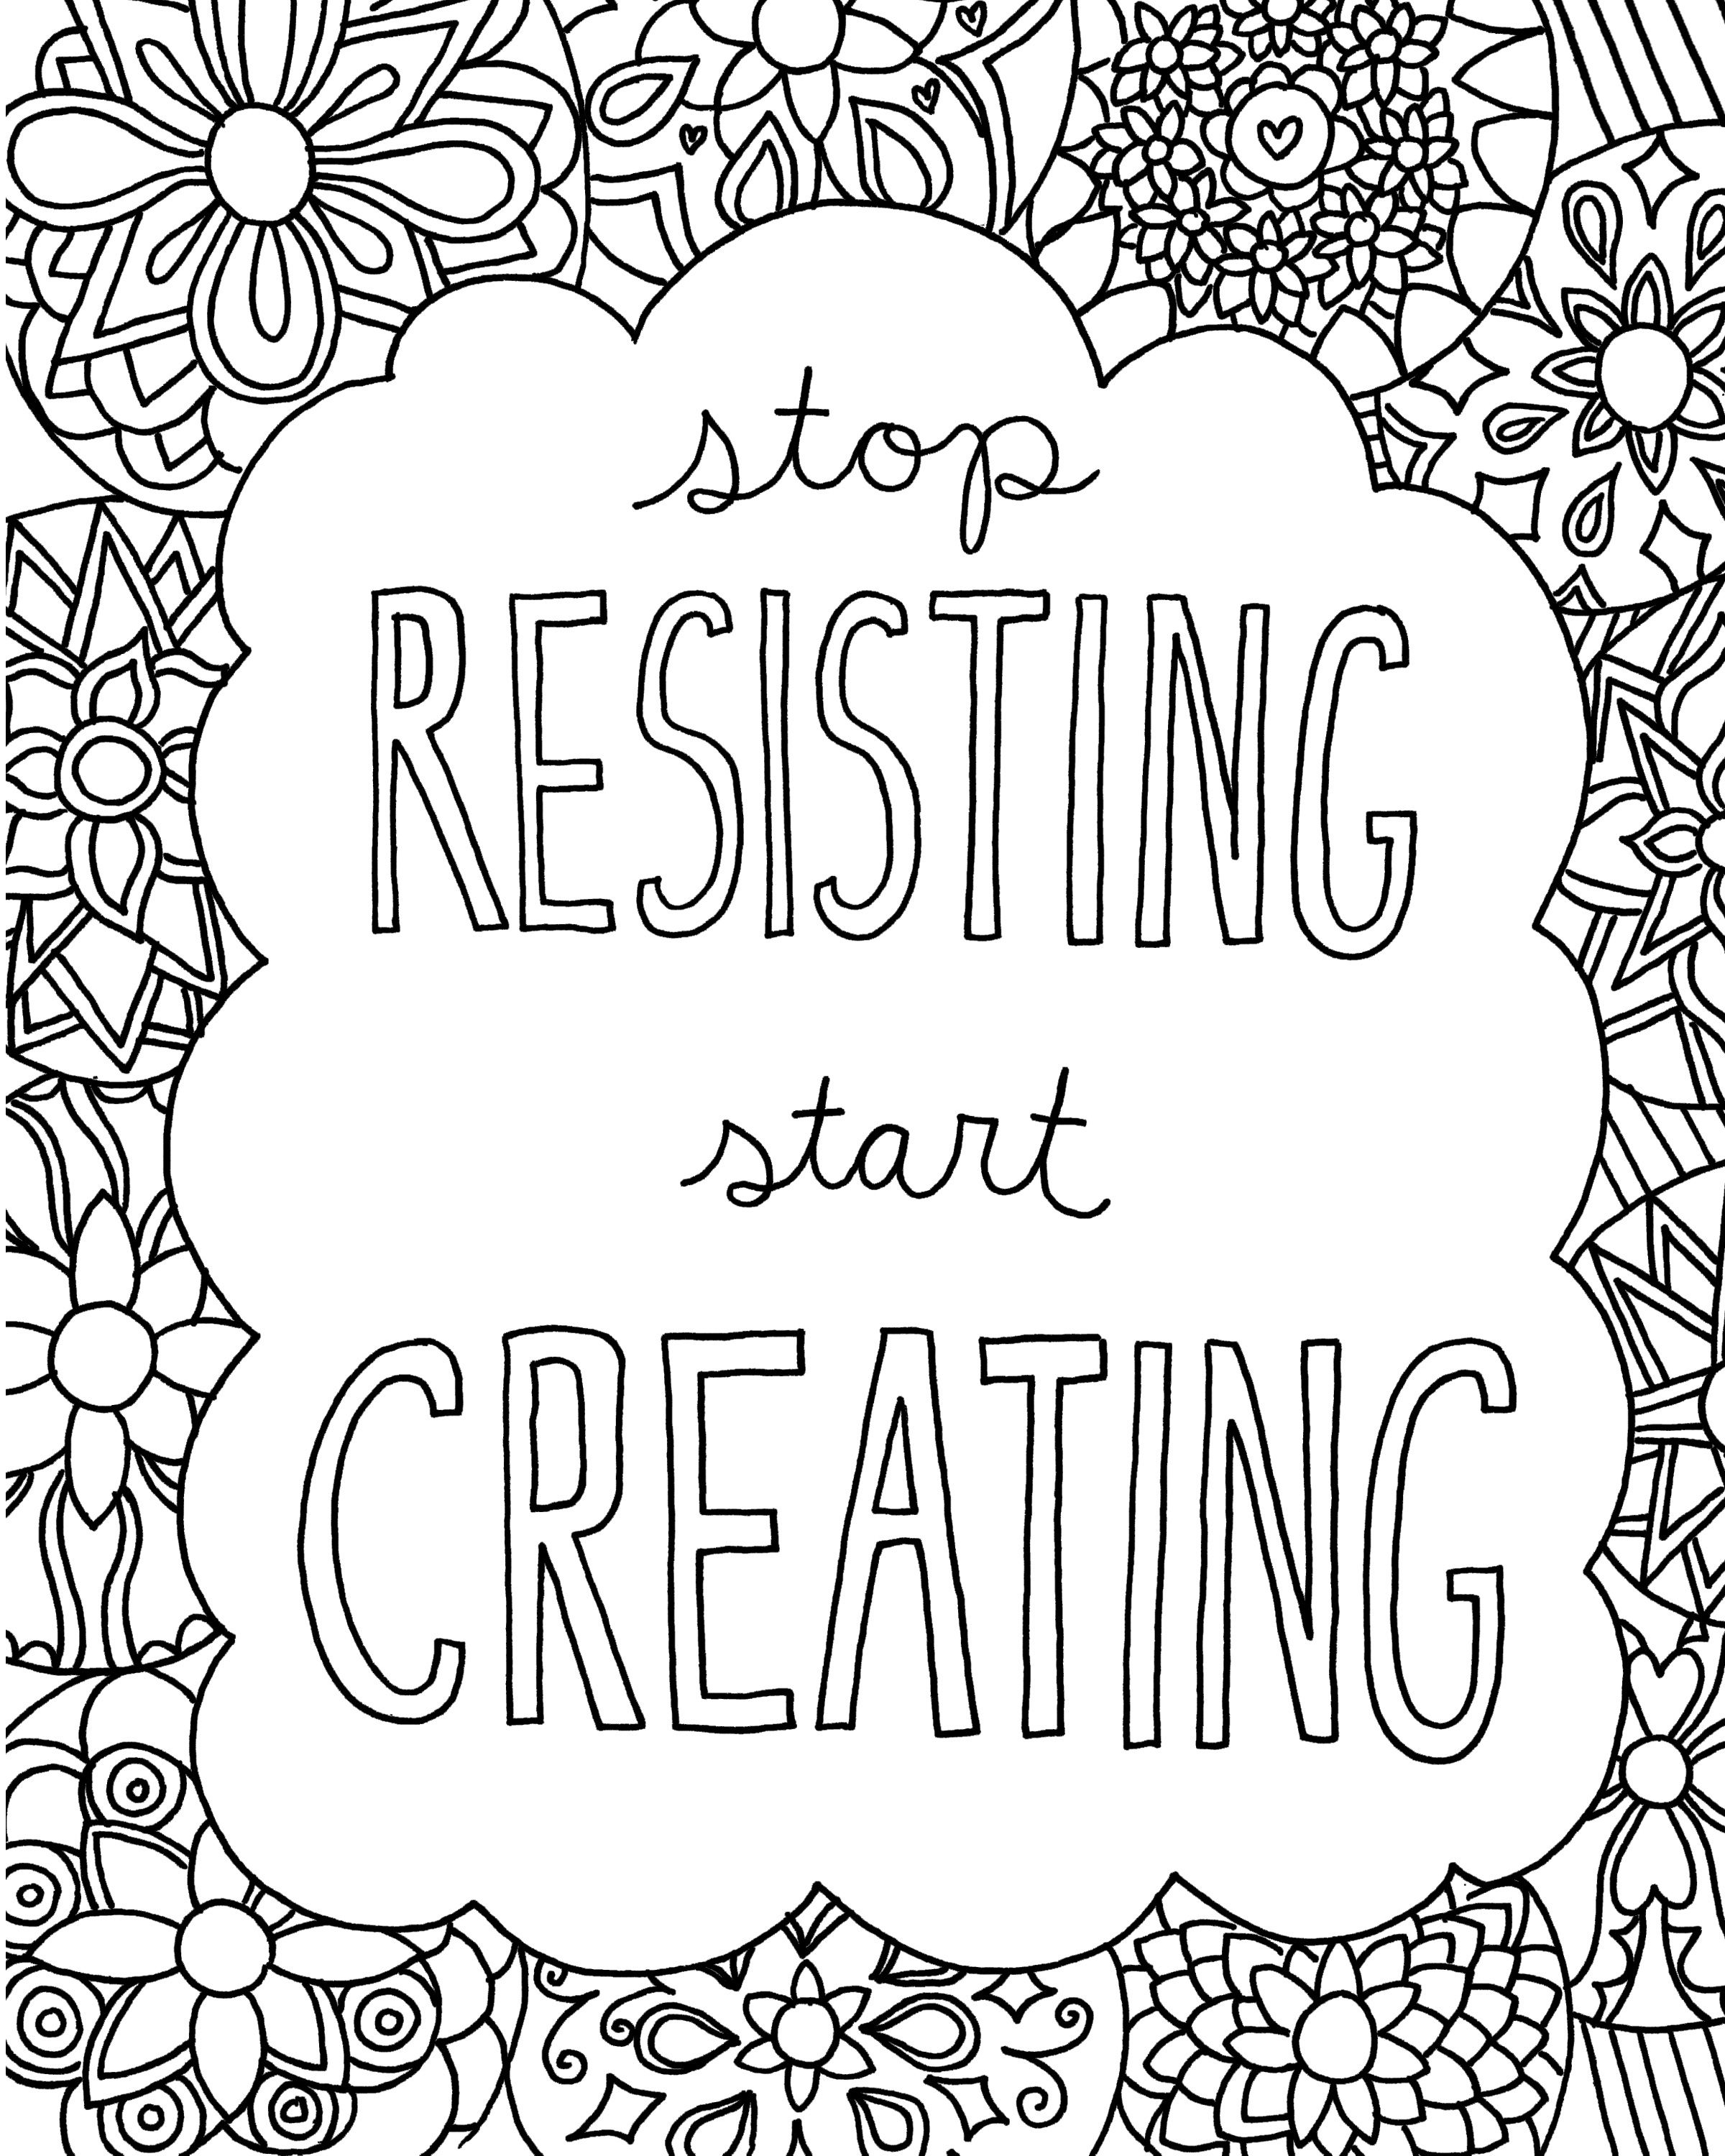 grown up coloring pages inspirational | Free Printable Quote Coloring Pages for Grown-Ups ...